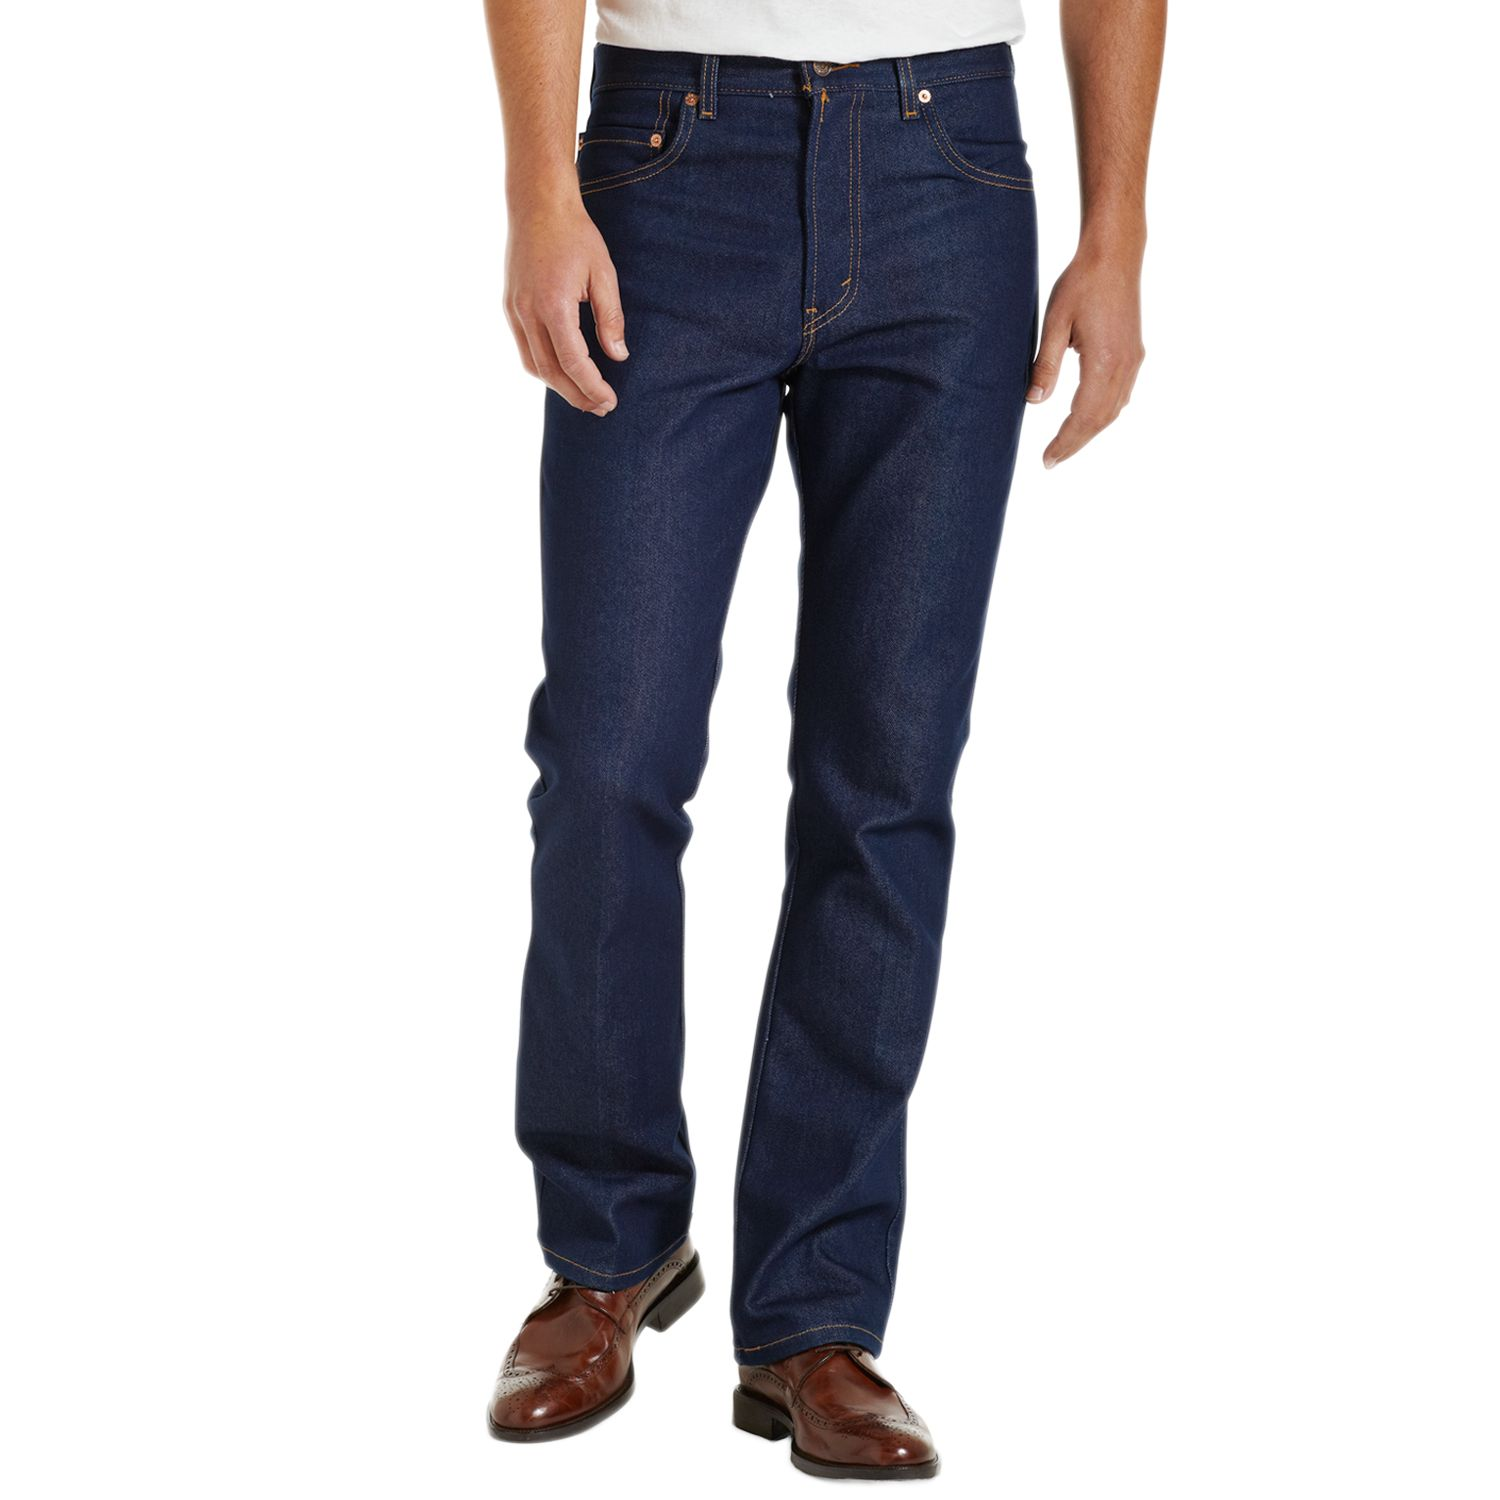 Bootcut Jeans Online Shopping India